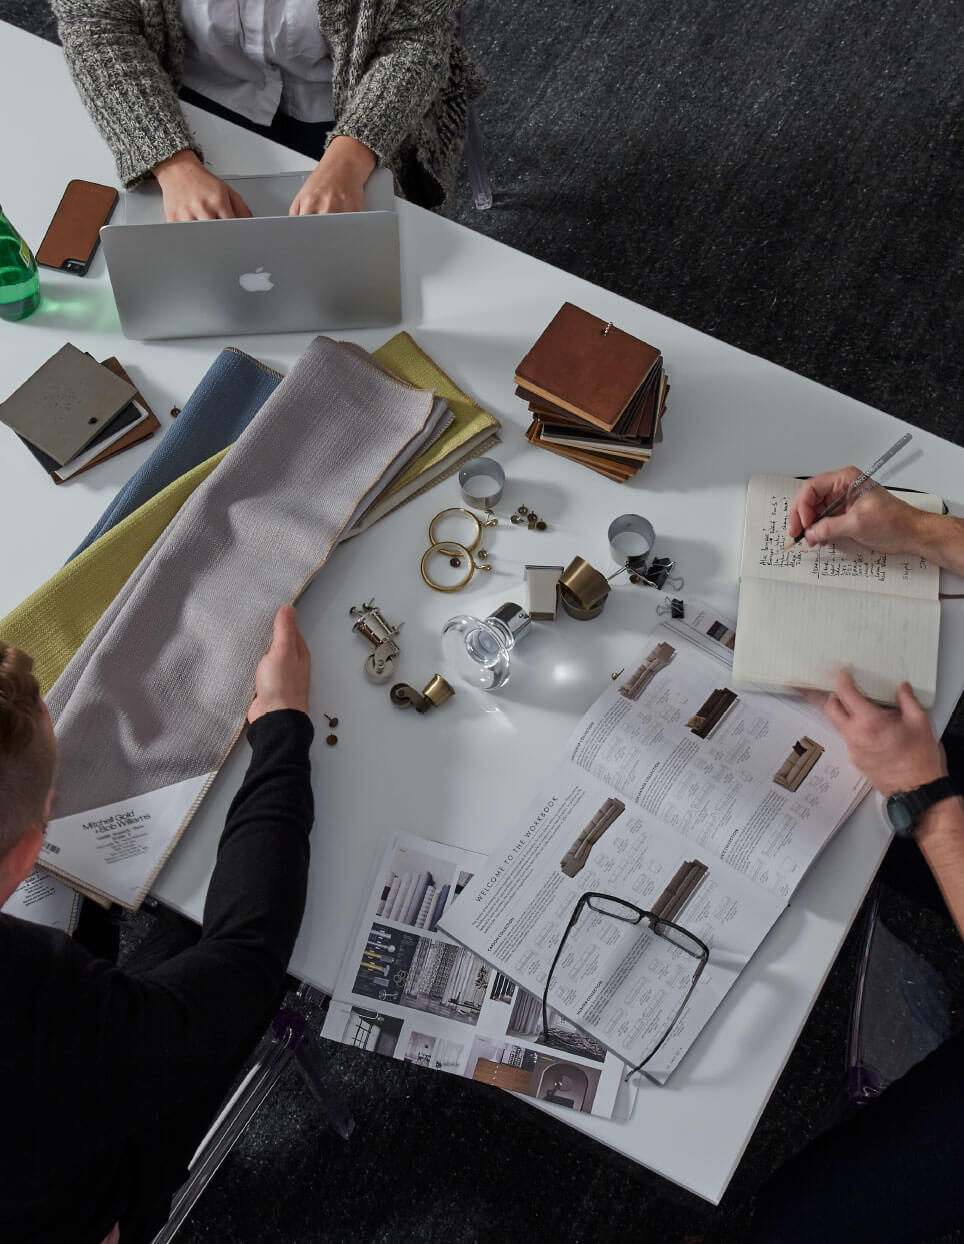 People looking at fabric options and other swatches for in-home design